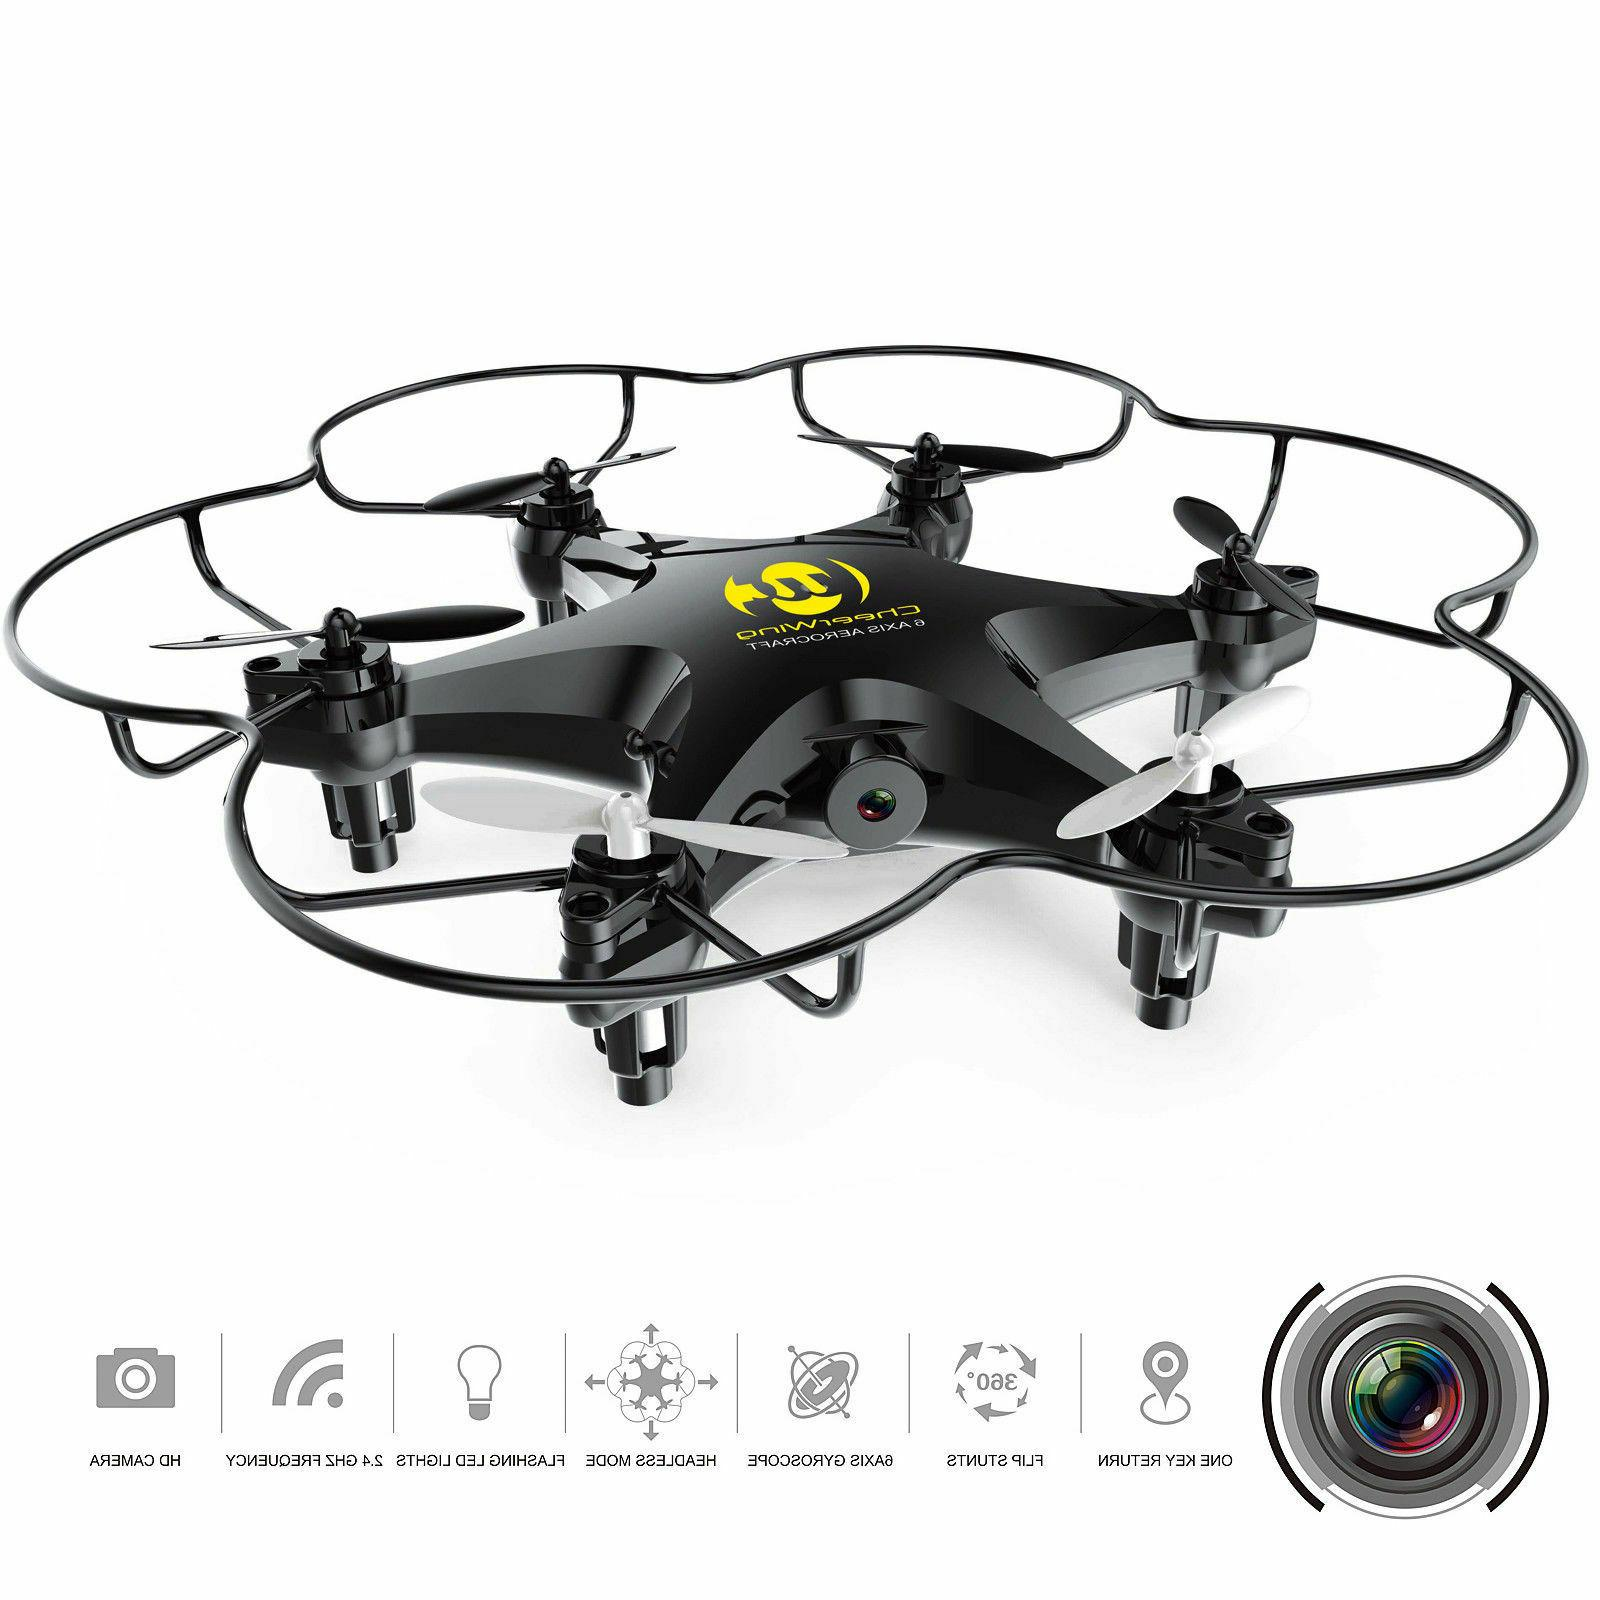 cw6 rc hexacopter mini remote control quadcopter